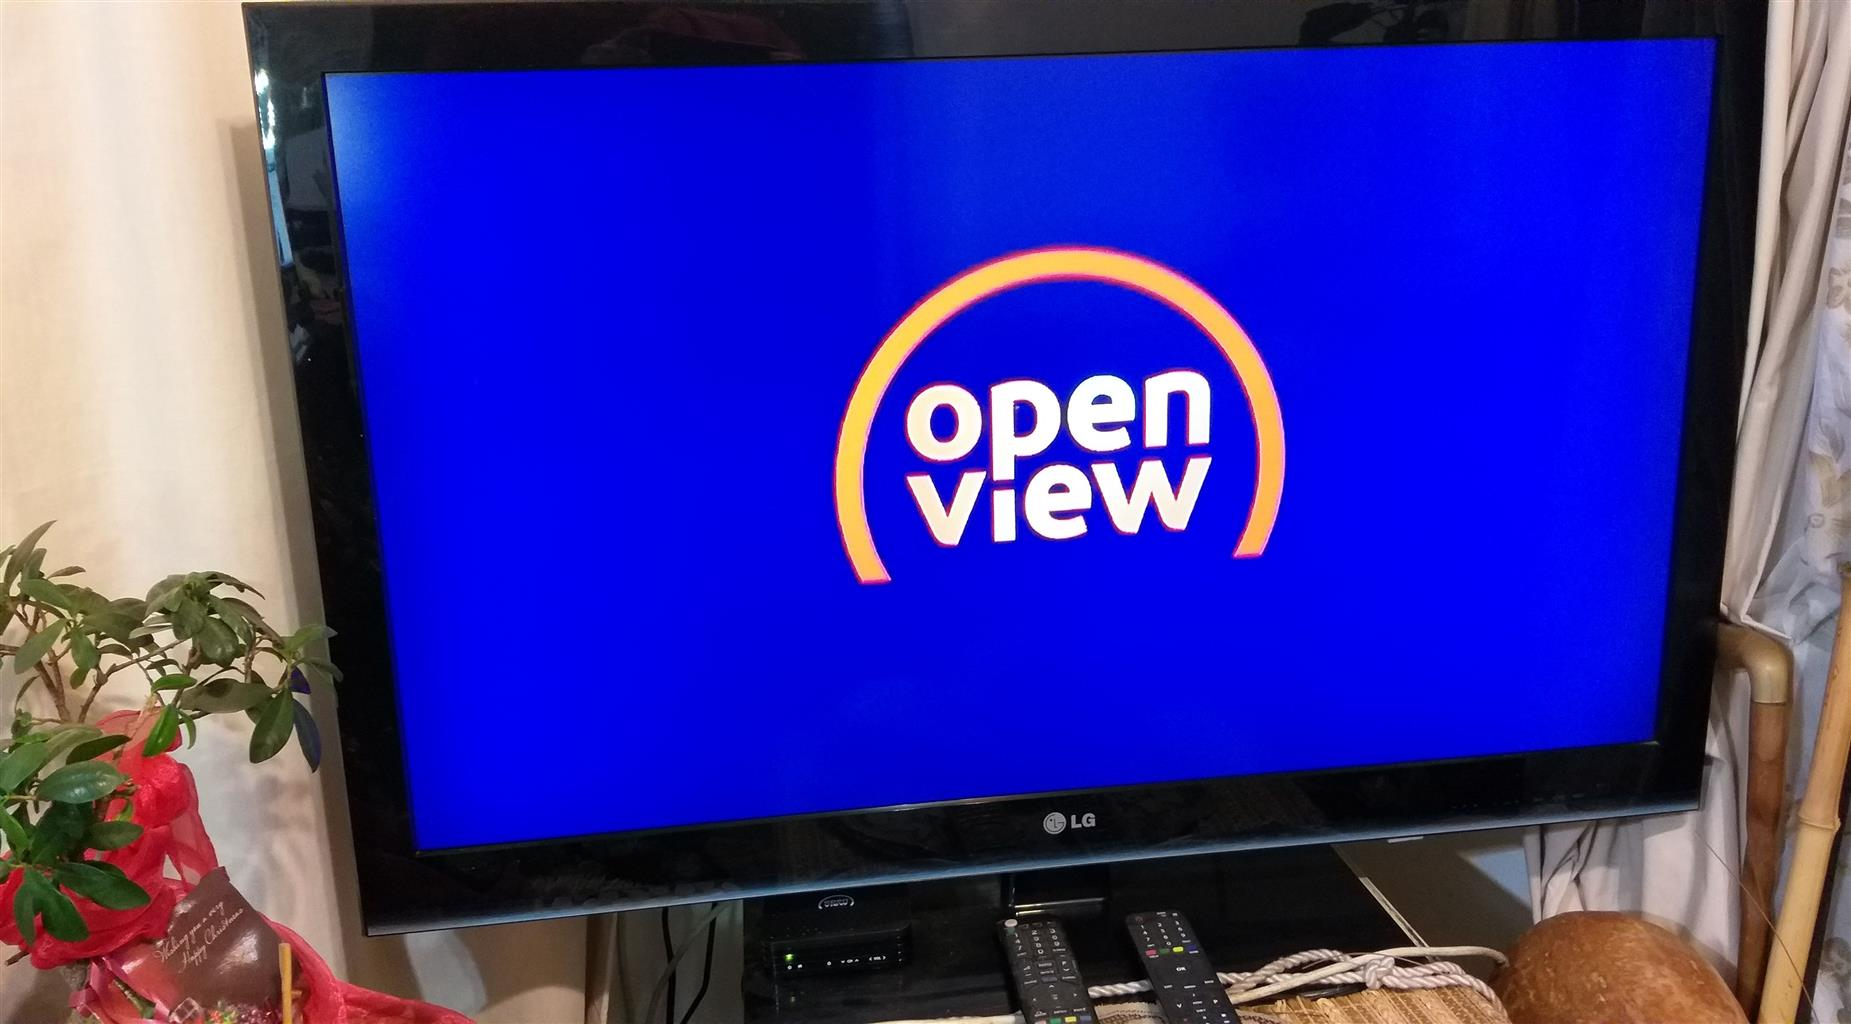 Full HD TV - LG incl. Remote - Excellent condition